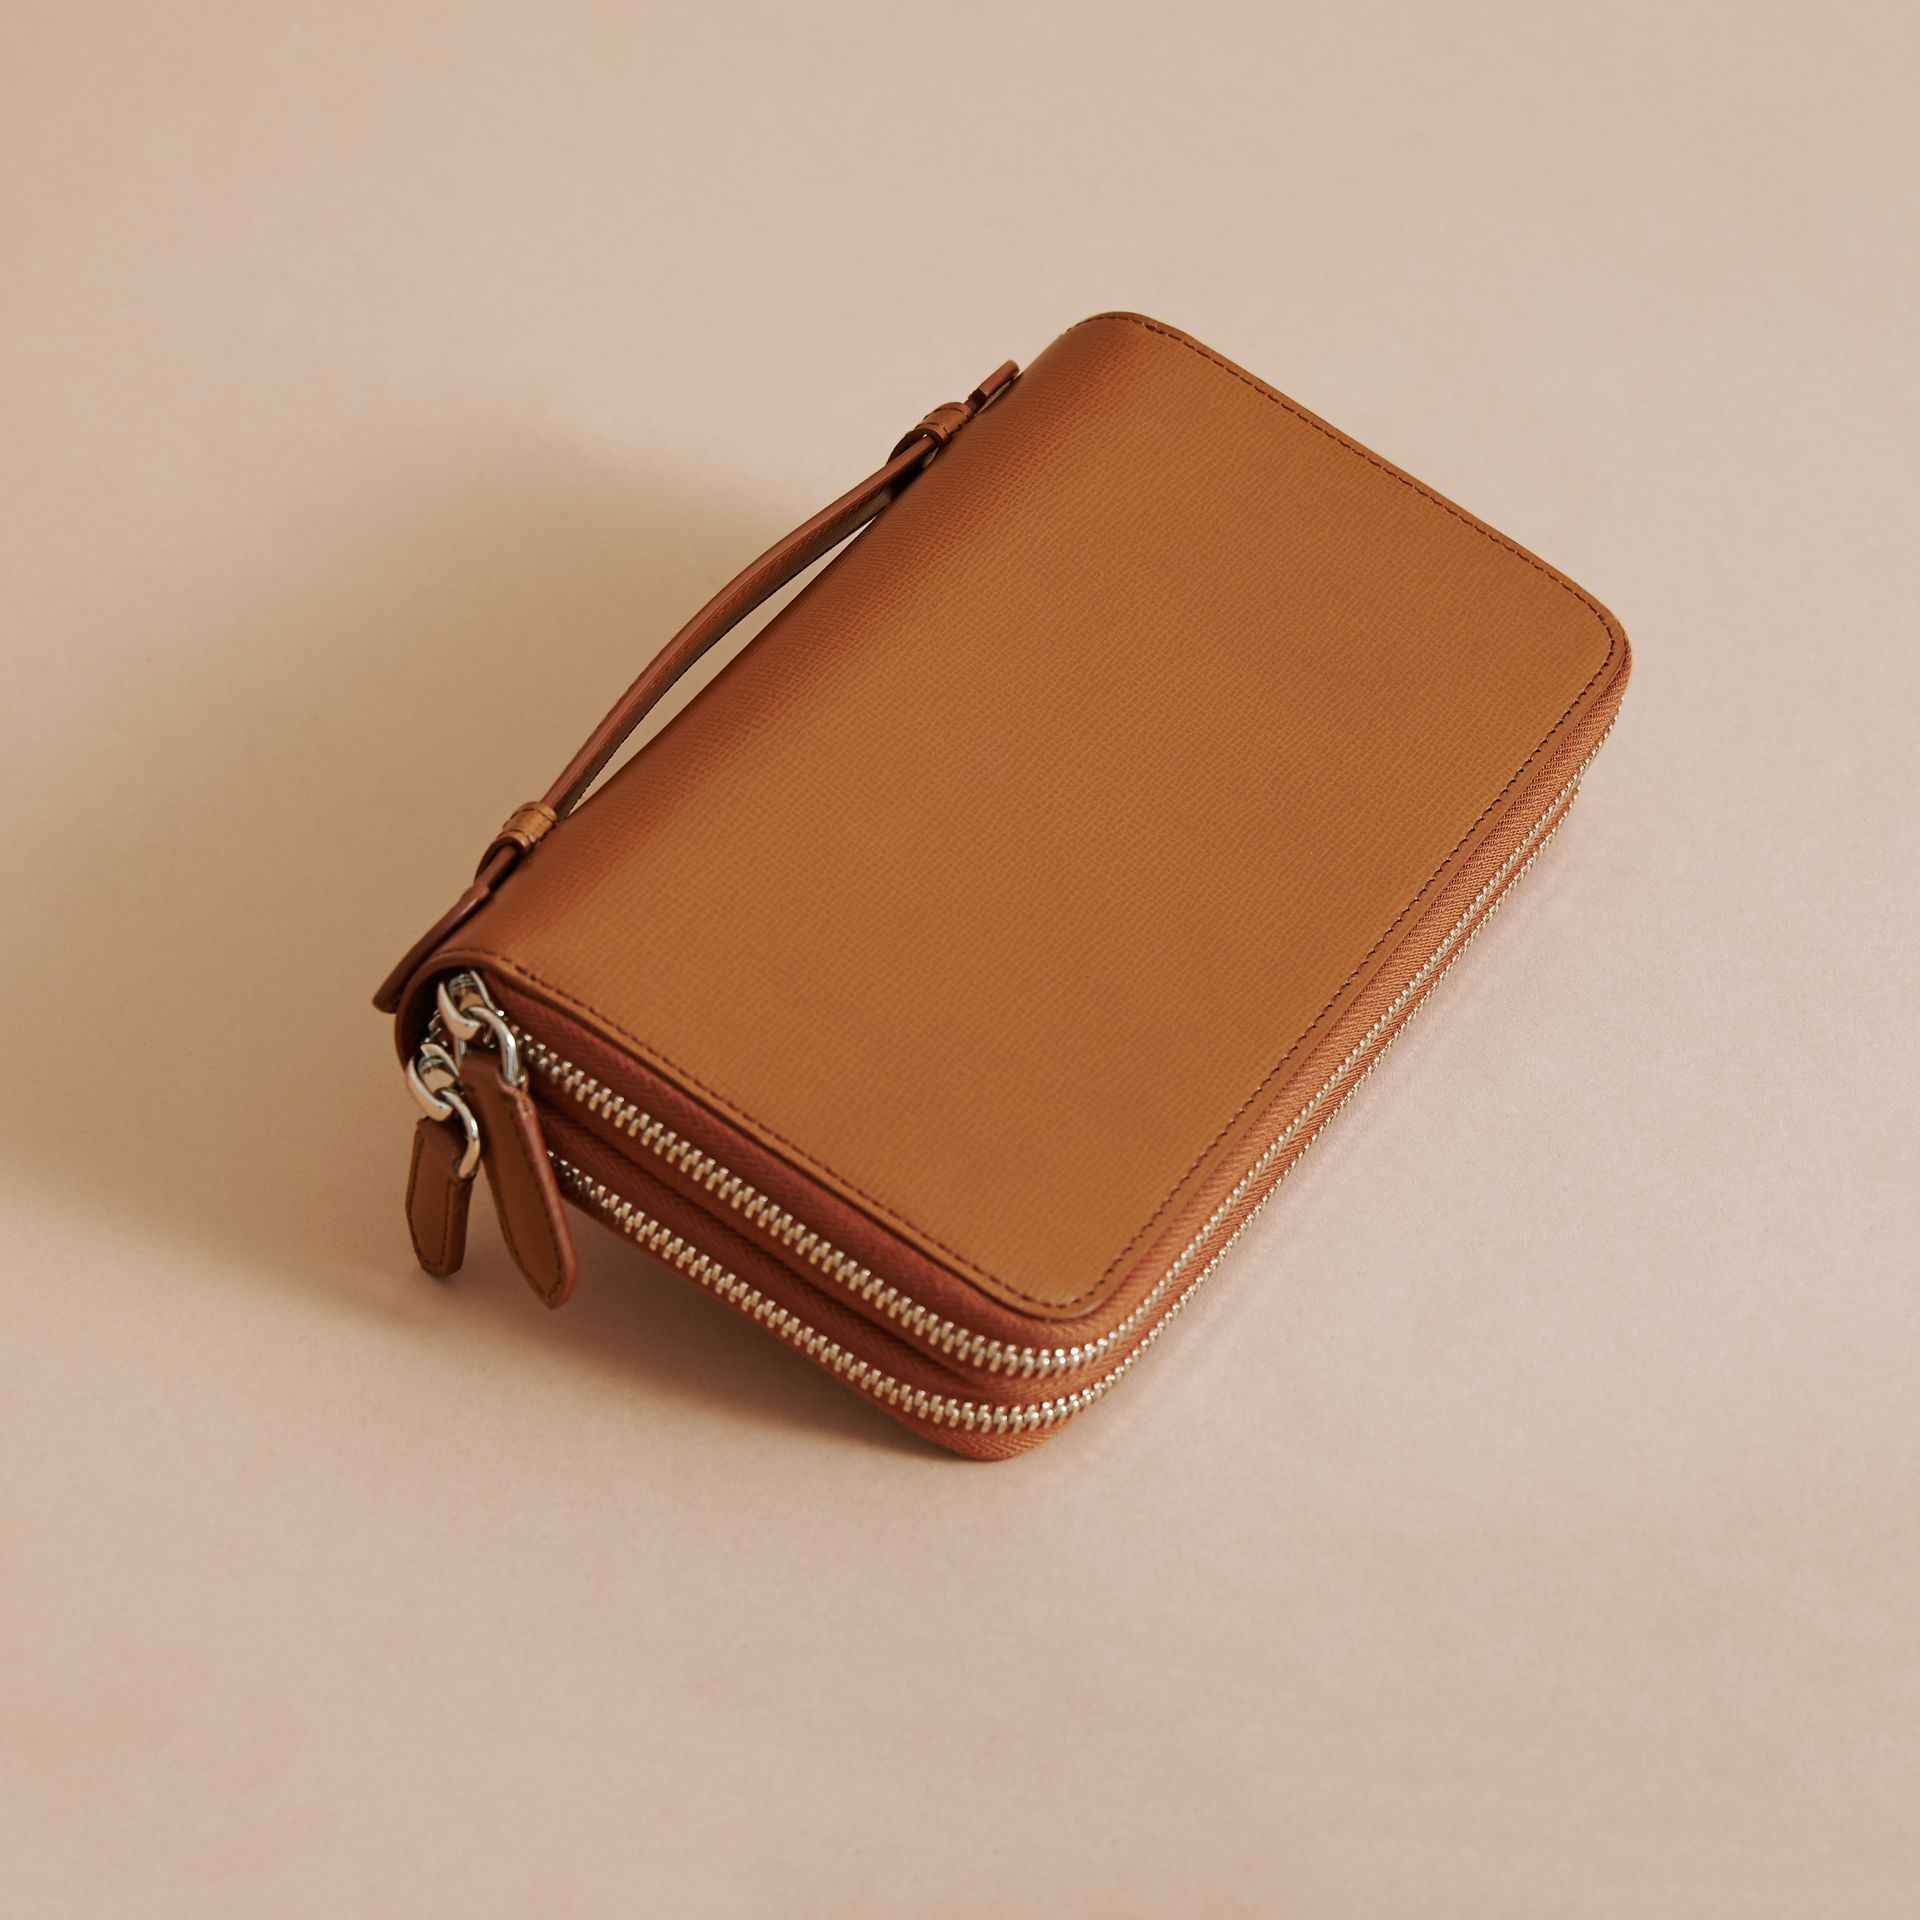 London Leather Travel Wallet in Tan - Men | Burberry - gallery image 4